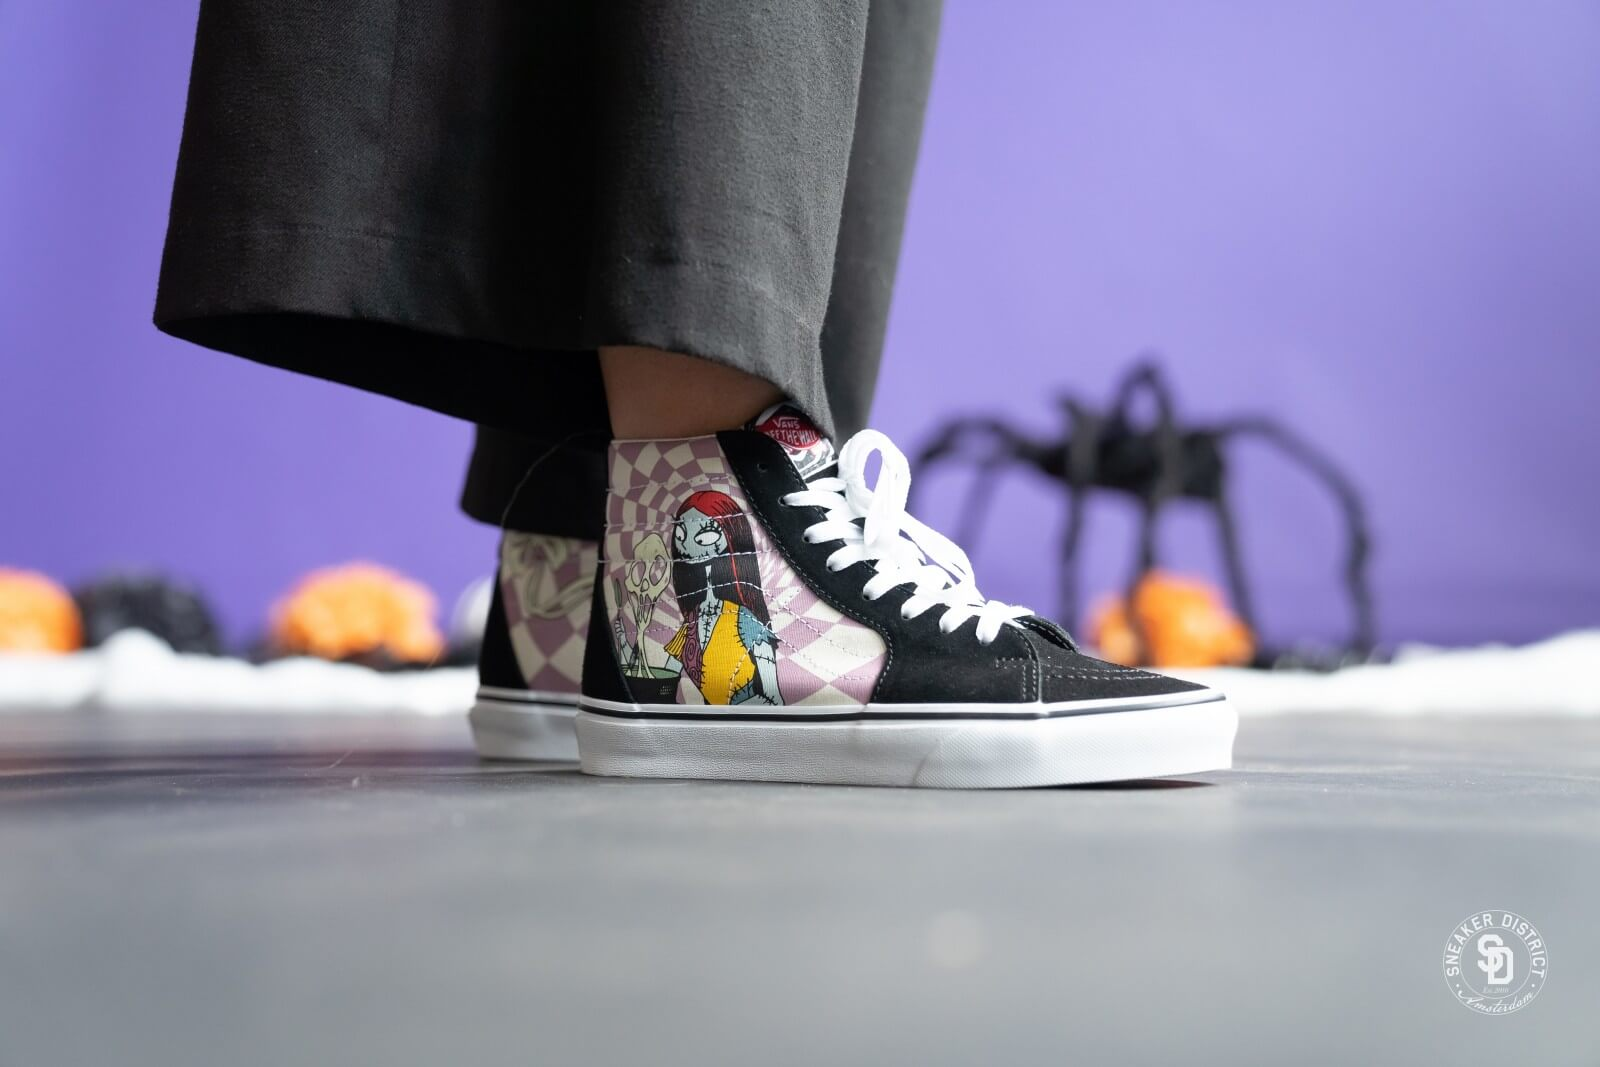 Vans x The Nightmare Before Christmas Sk8 Hi Sally VN0A4BV6TRO1